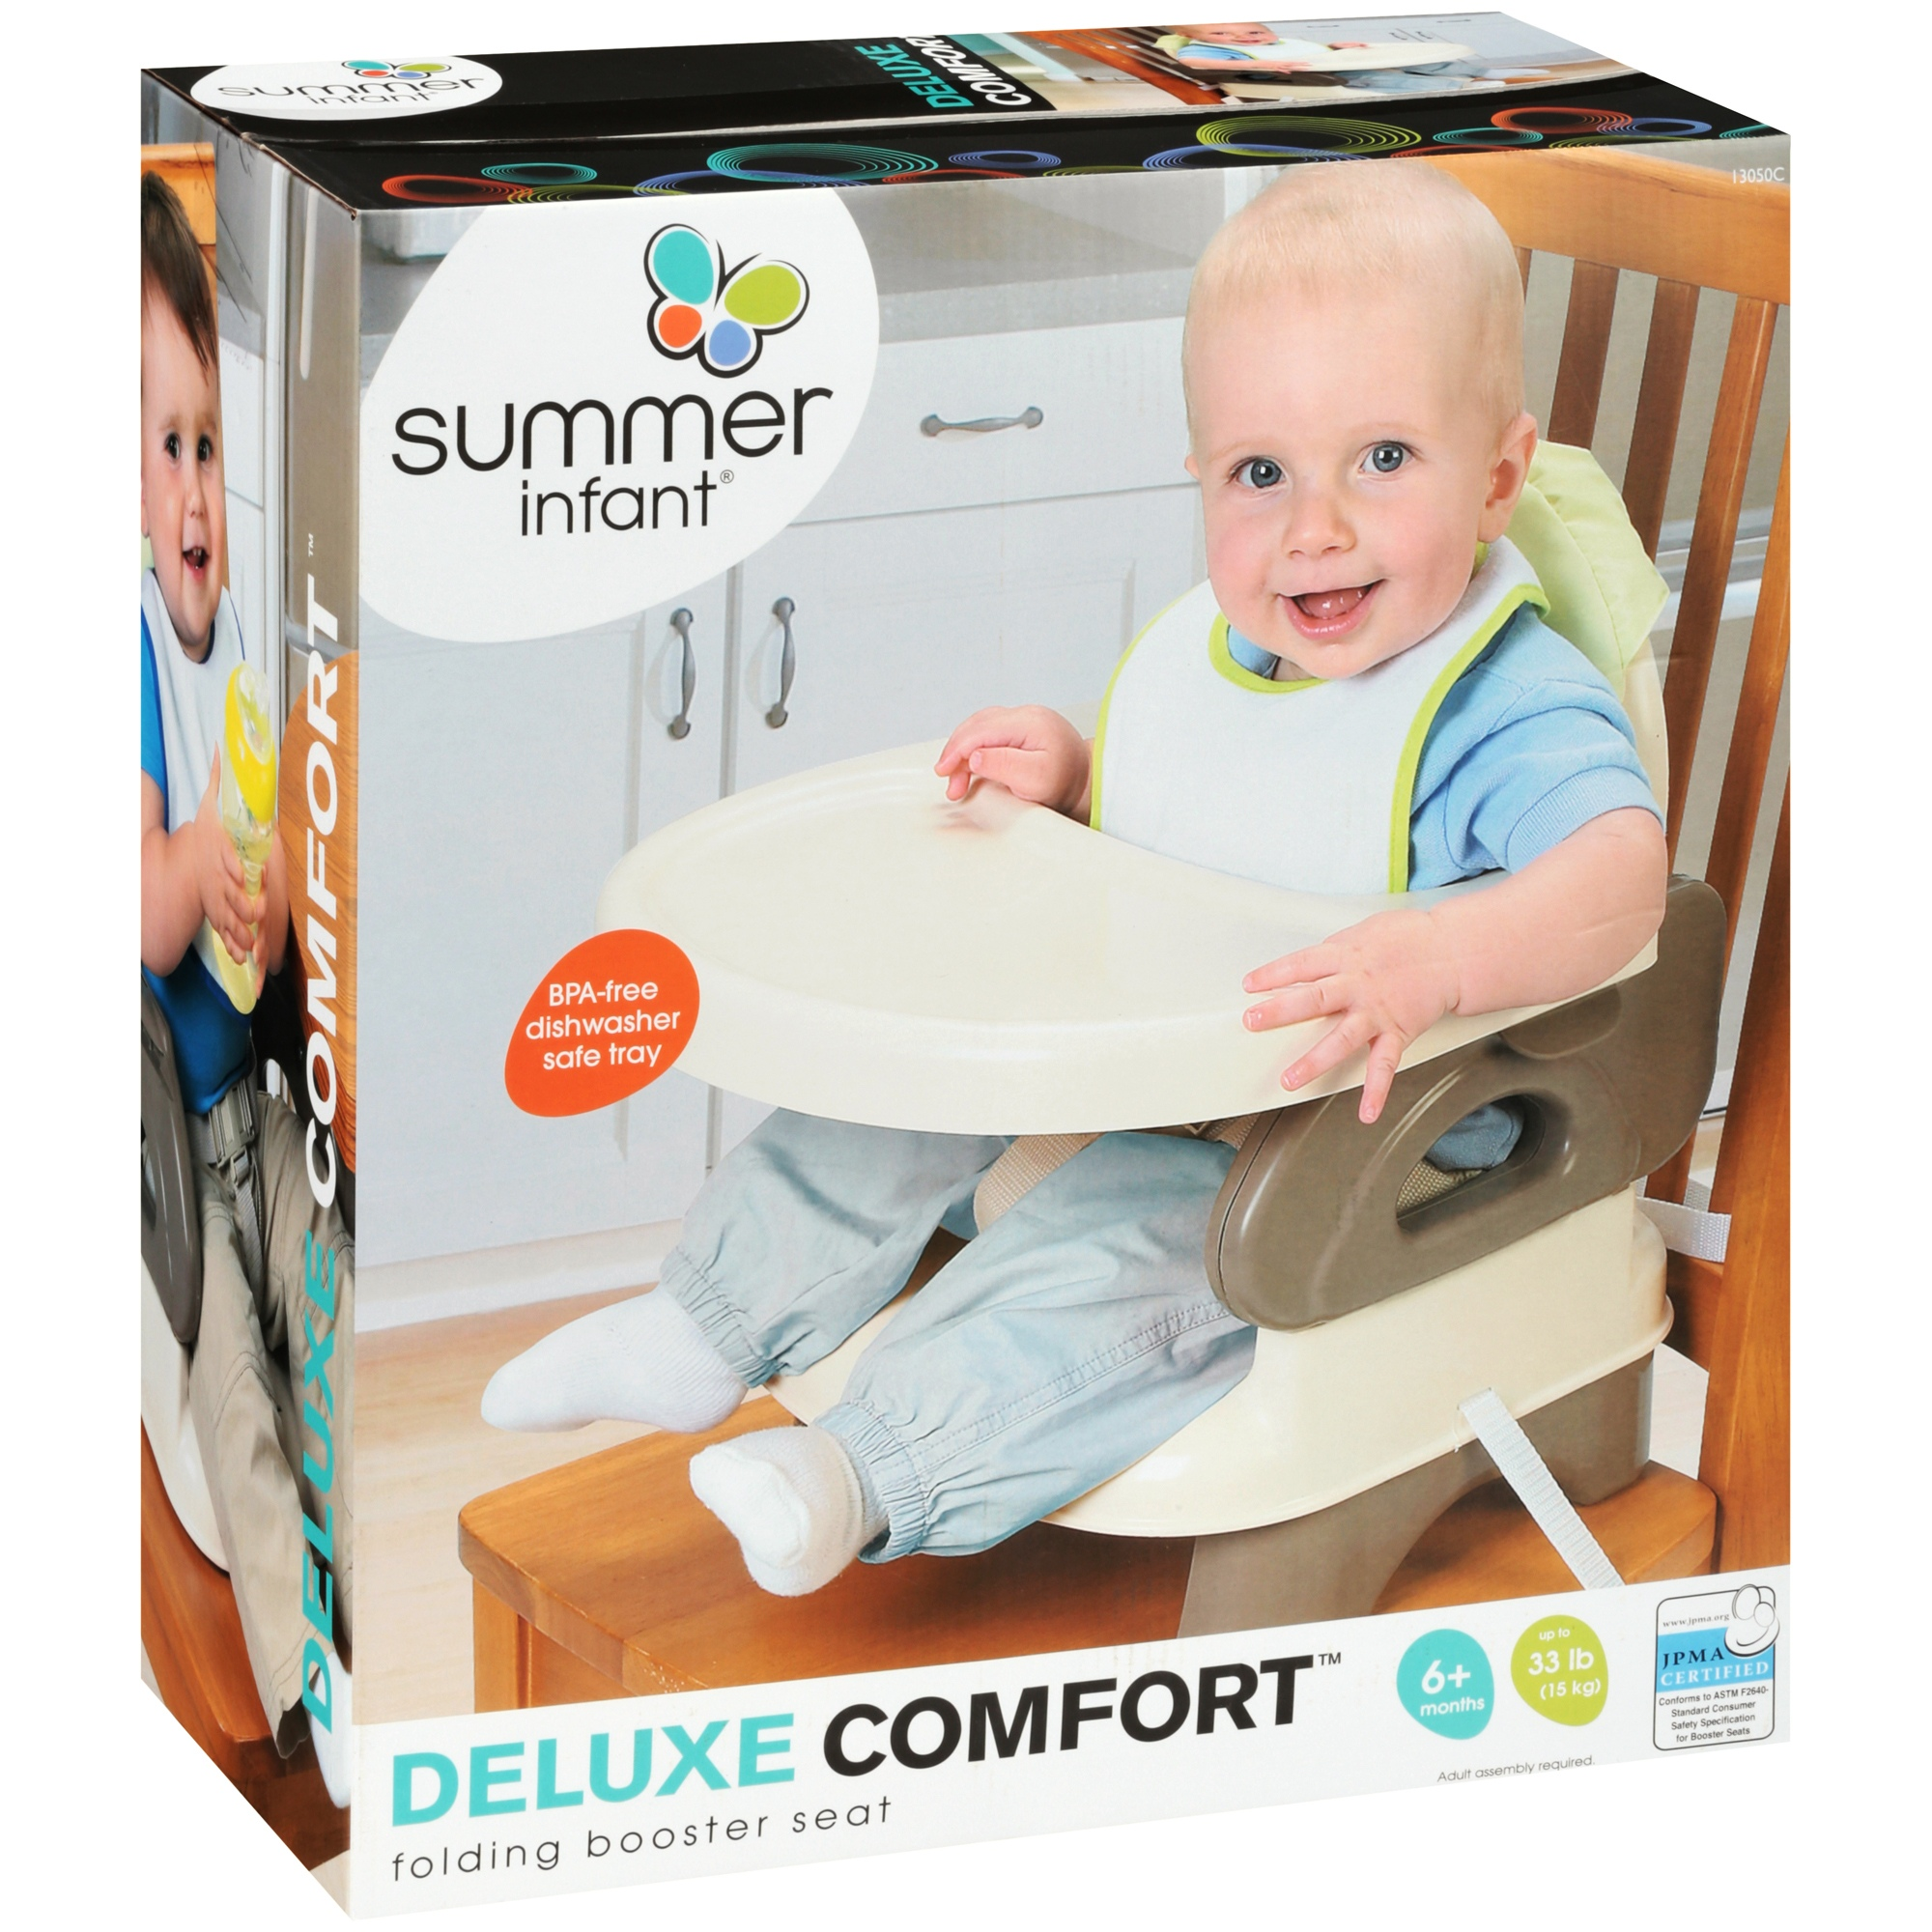 Delicieux Summer Infant Deluxe Comfort Folding Booster Seat   Tan   Walmart.com